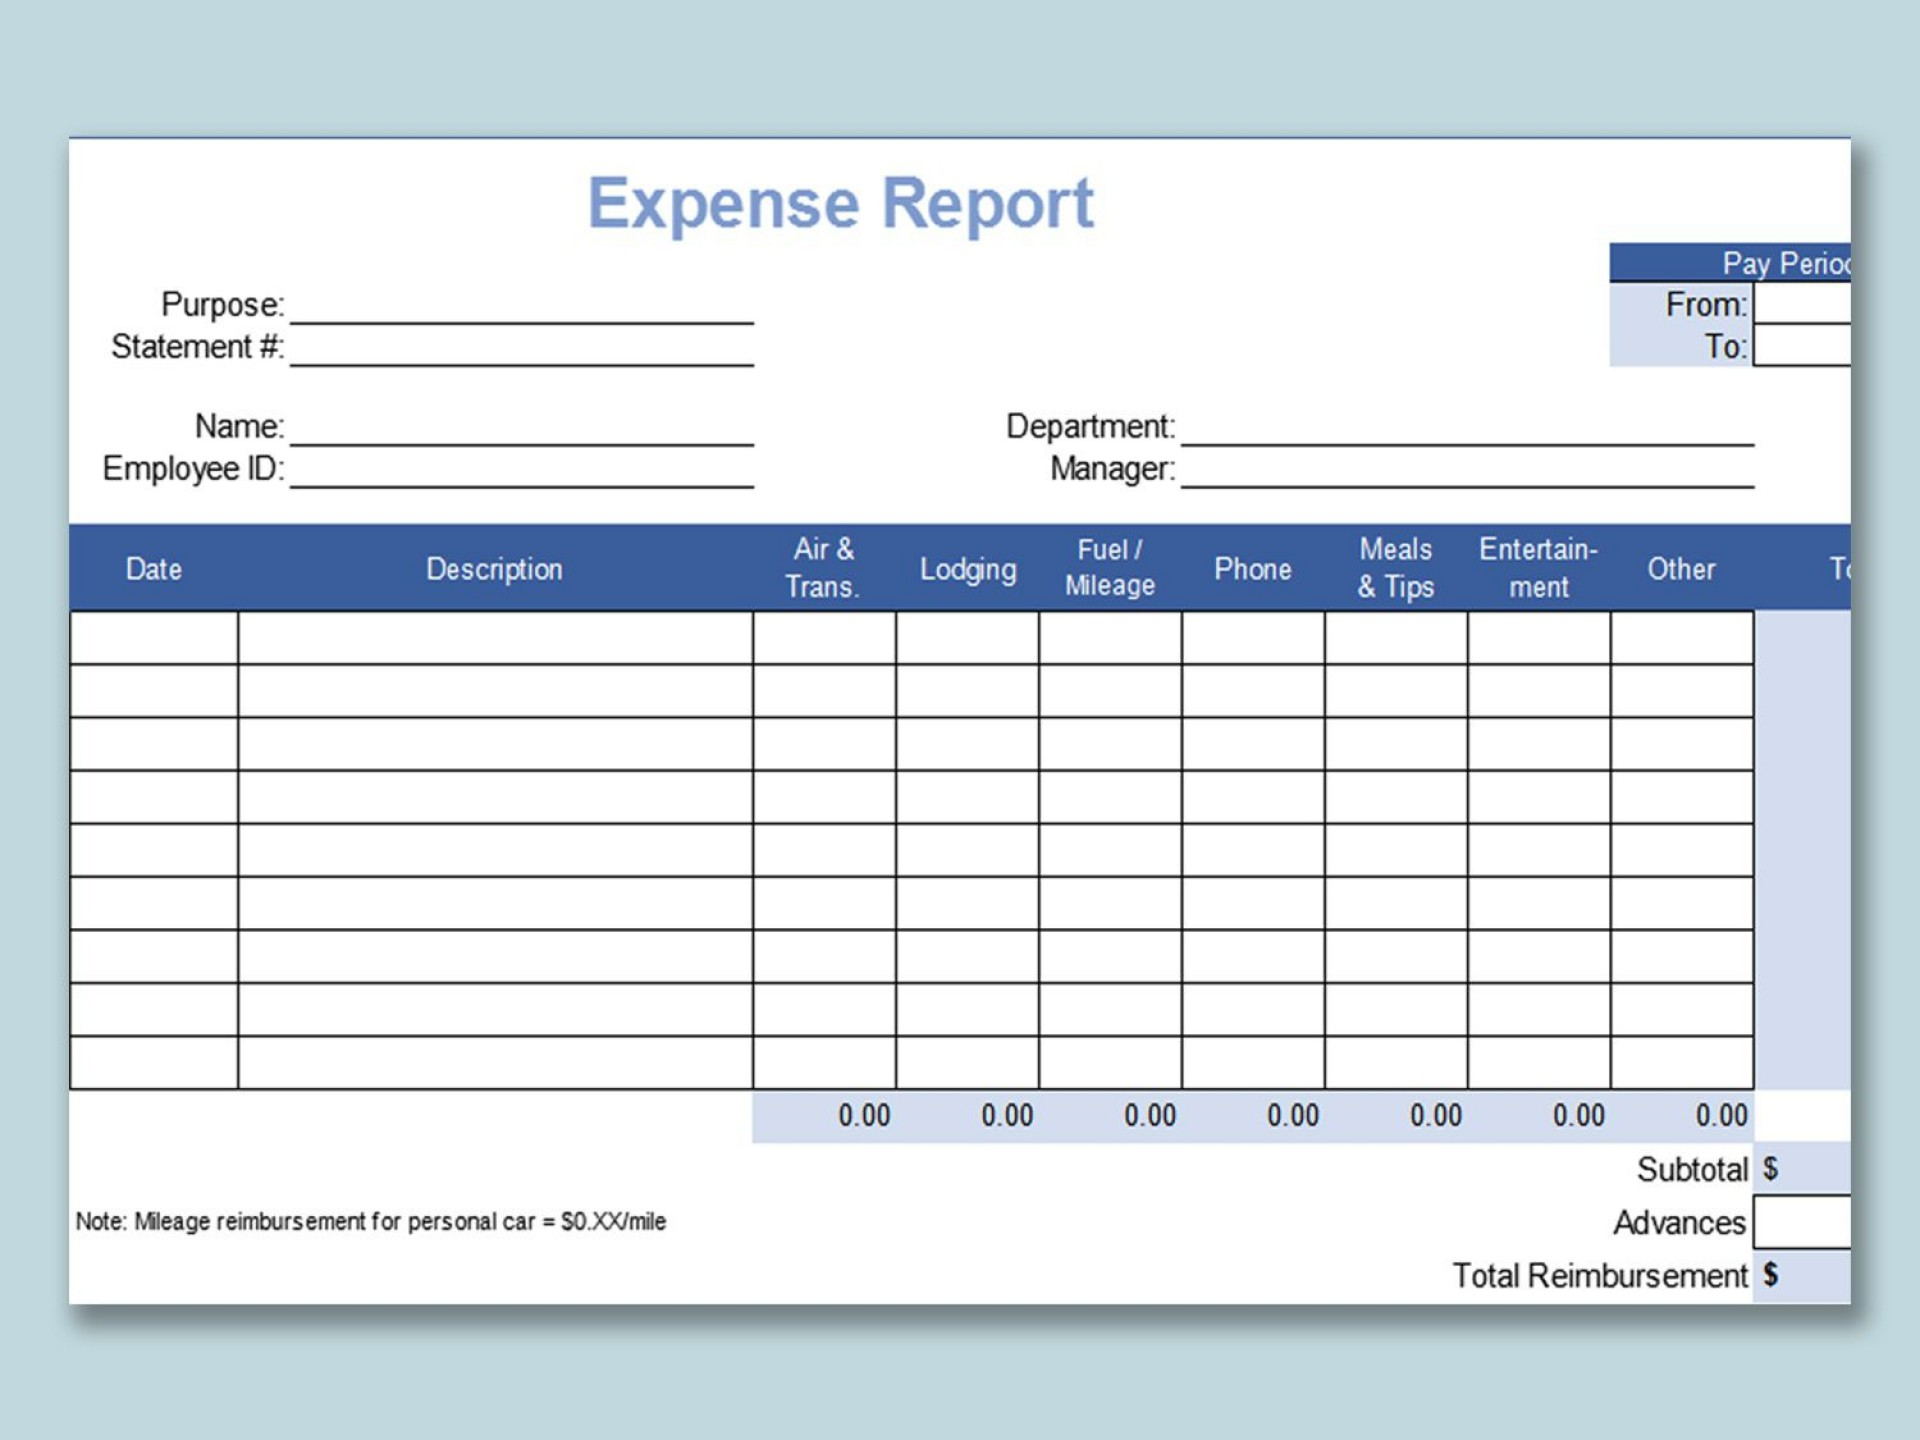 001 Incredible Travel Expense Report Template Inspiration  Google Sheet Free Form Pdf1920